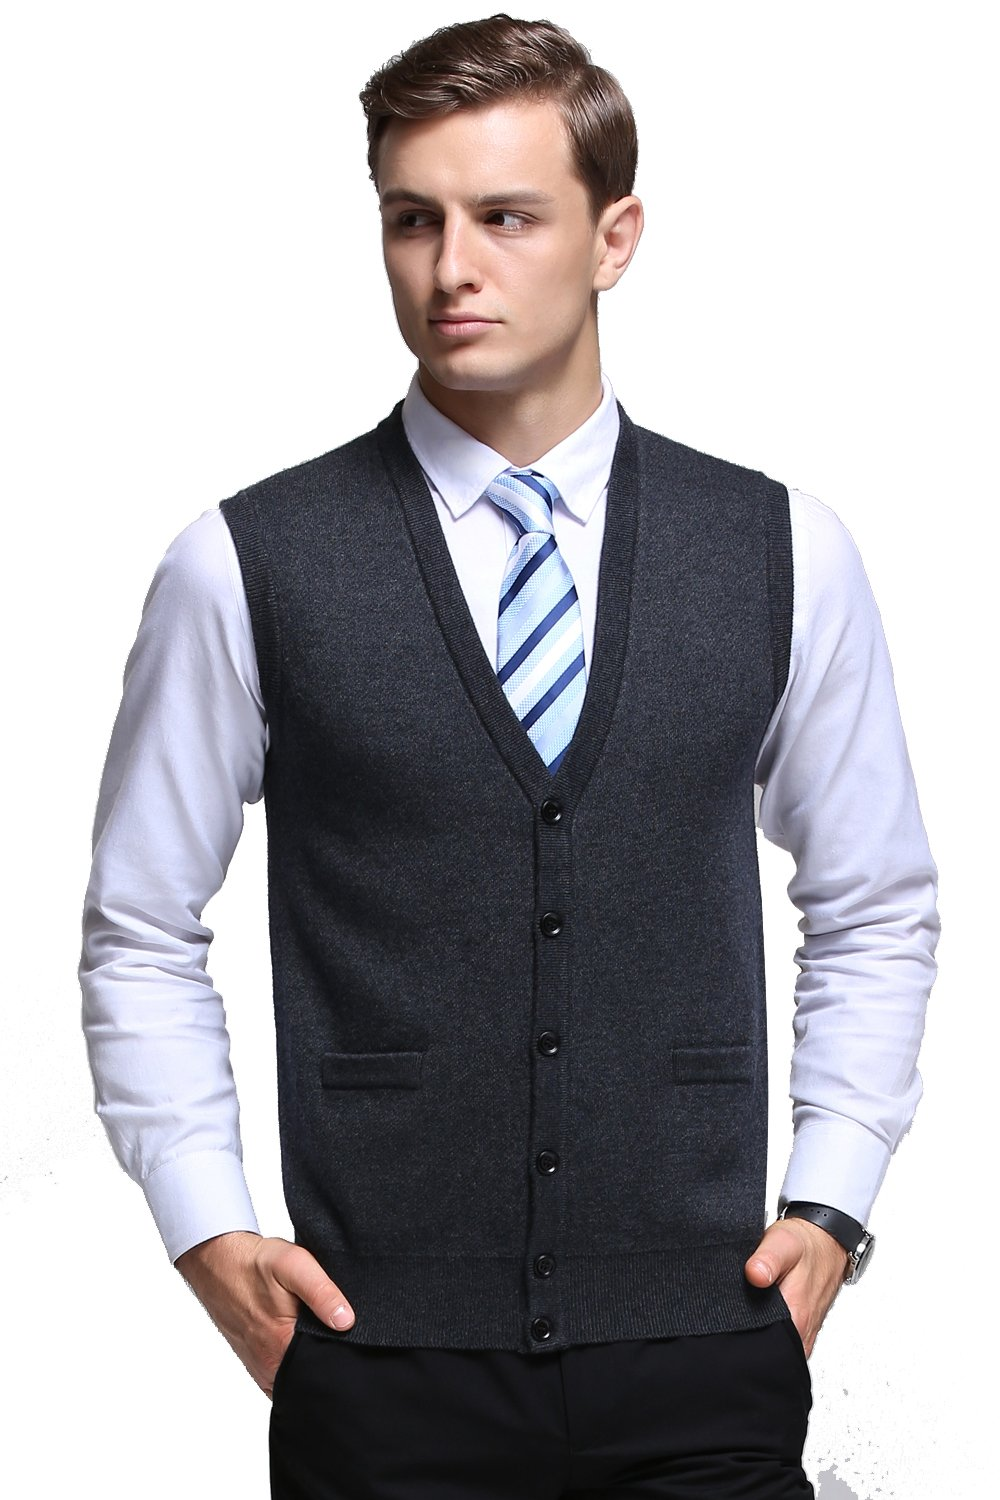 Kinlonsair Mens Slim Fit Ribbed Knit Cardigan Sweater Vest with Pockets (X-Large, ZKSM852-dark Gray)